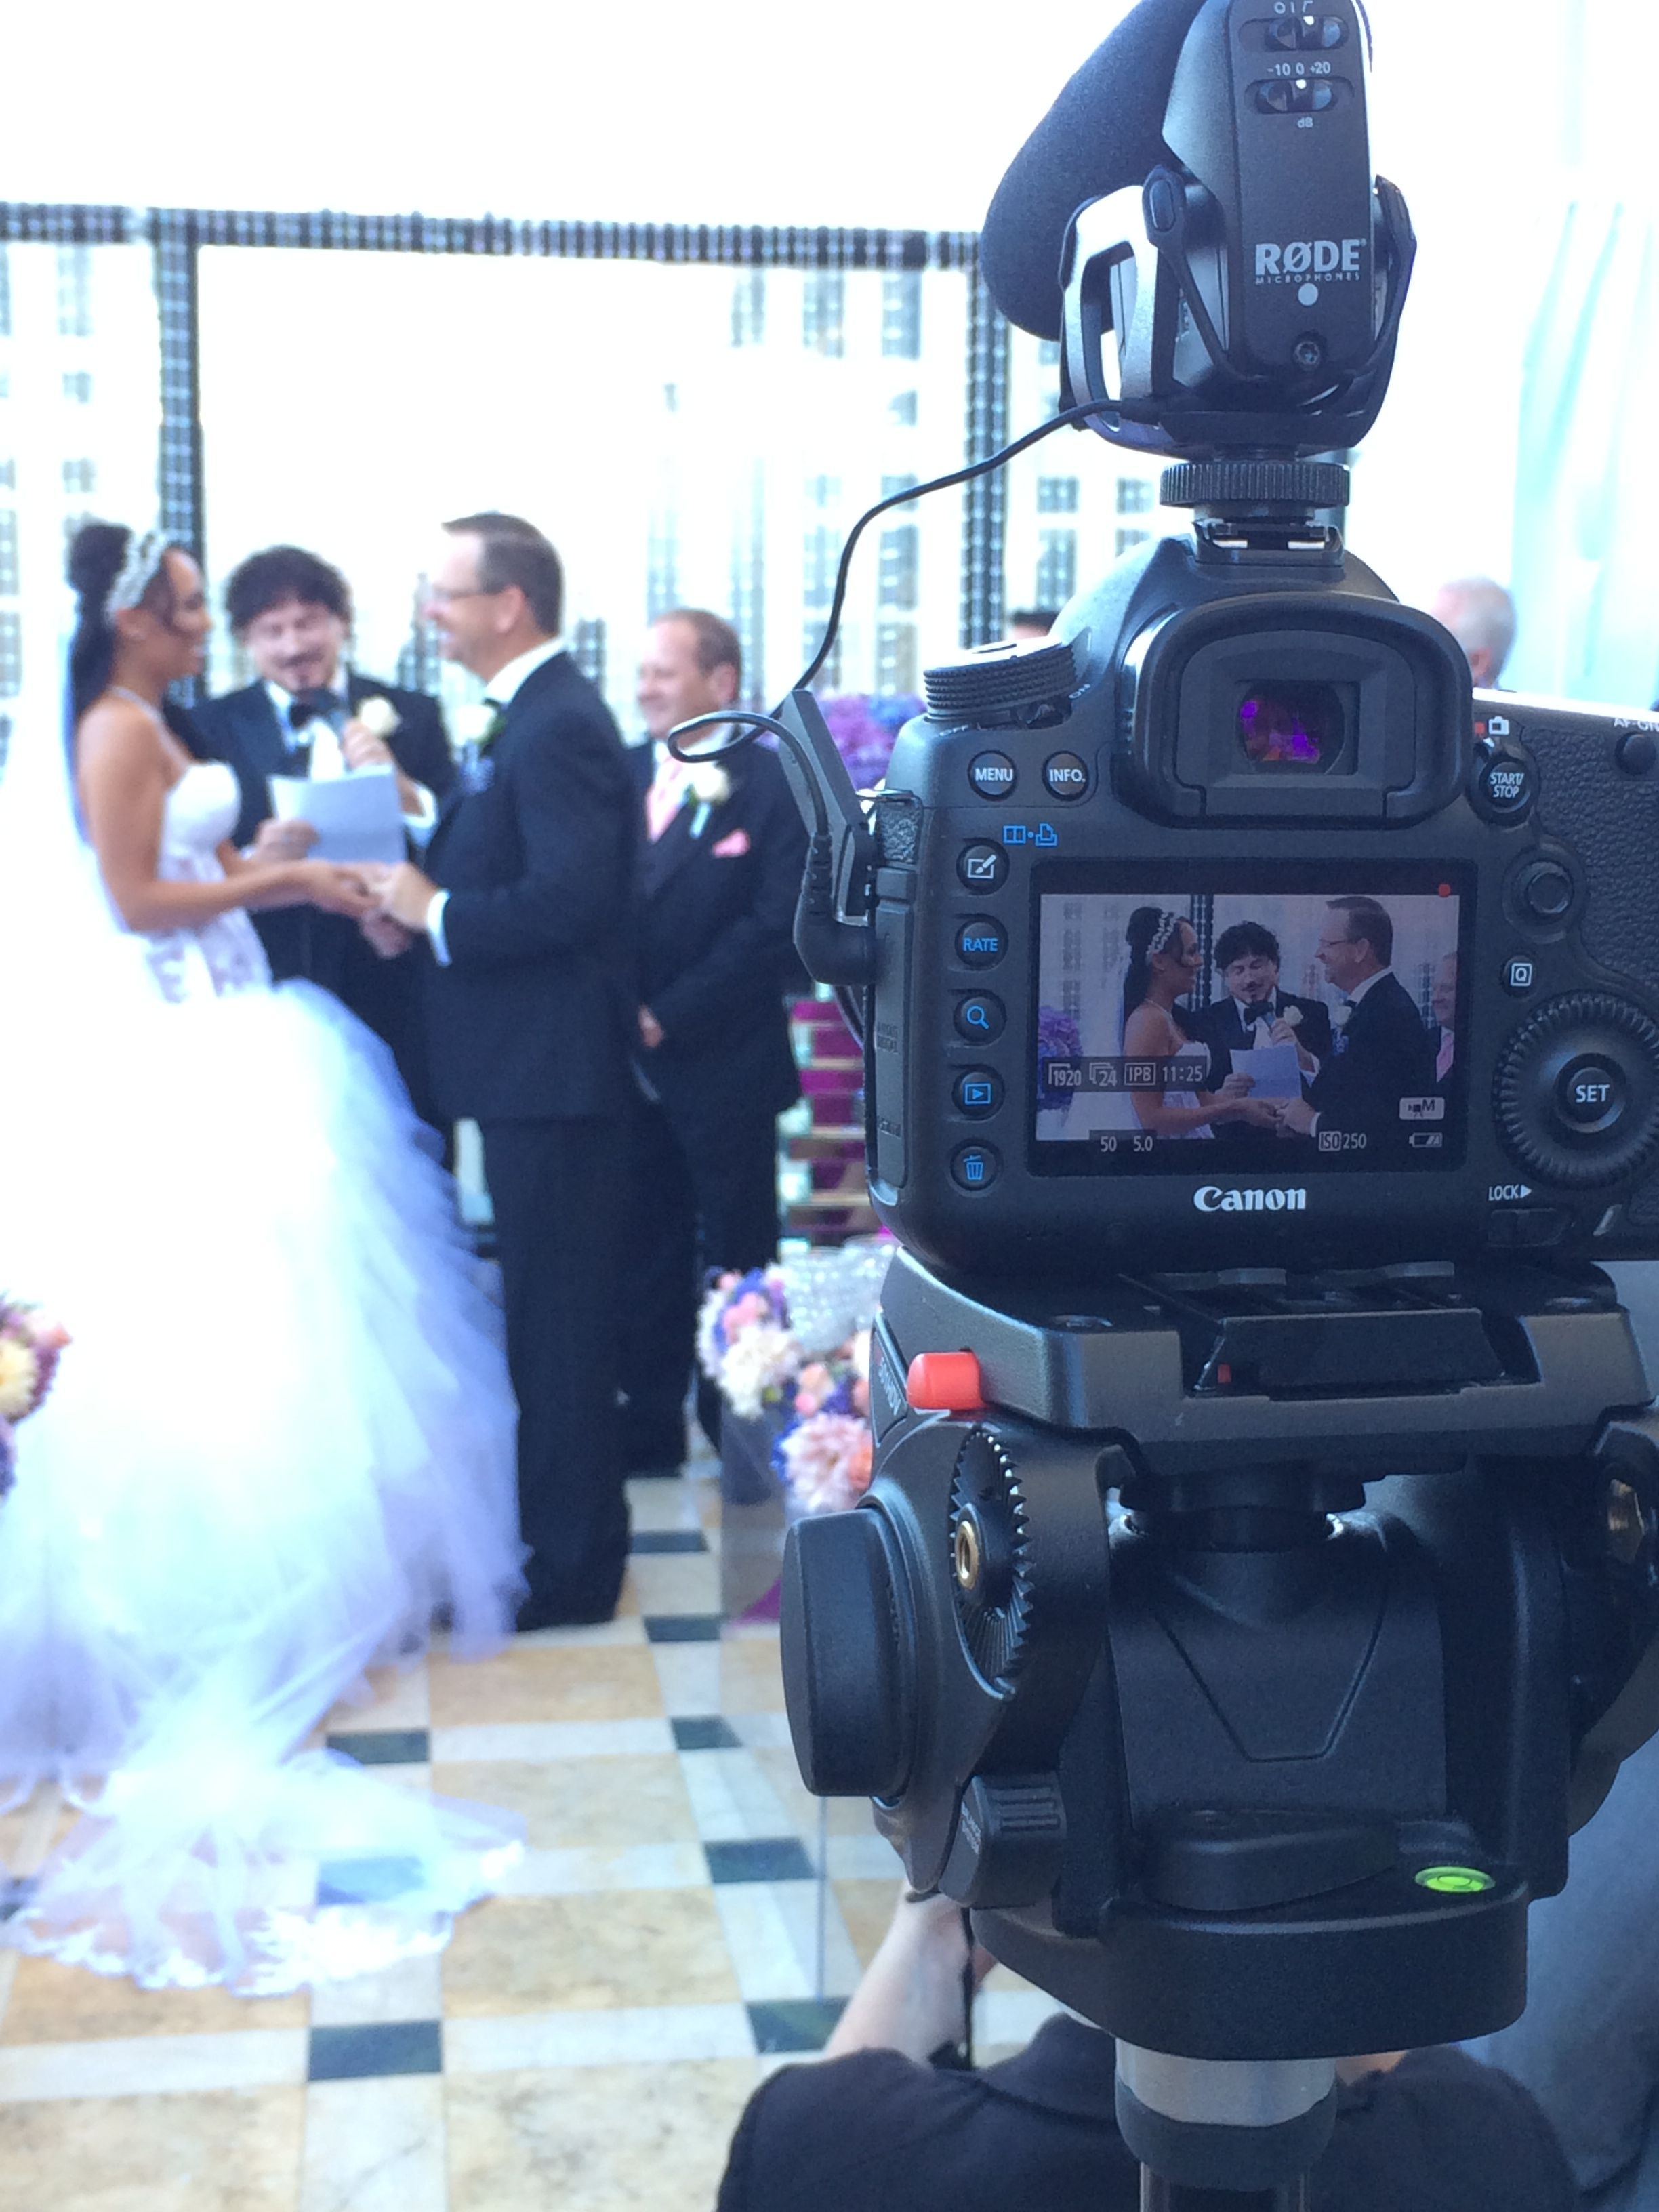 Truly behind the scenes of Lighten FIlm's lens.   Las Vegas Wedding Planner:  Andrea Eppolito Events  | Las Vegas Wedding Venue:   Caesars Palace  | Floral and Decor:   Naakiti Floral   | Wedding Gown:  Pnina Torna  i | Behind the Scenes Photos:   Andrea Eppolito